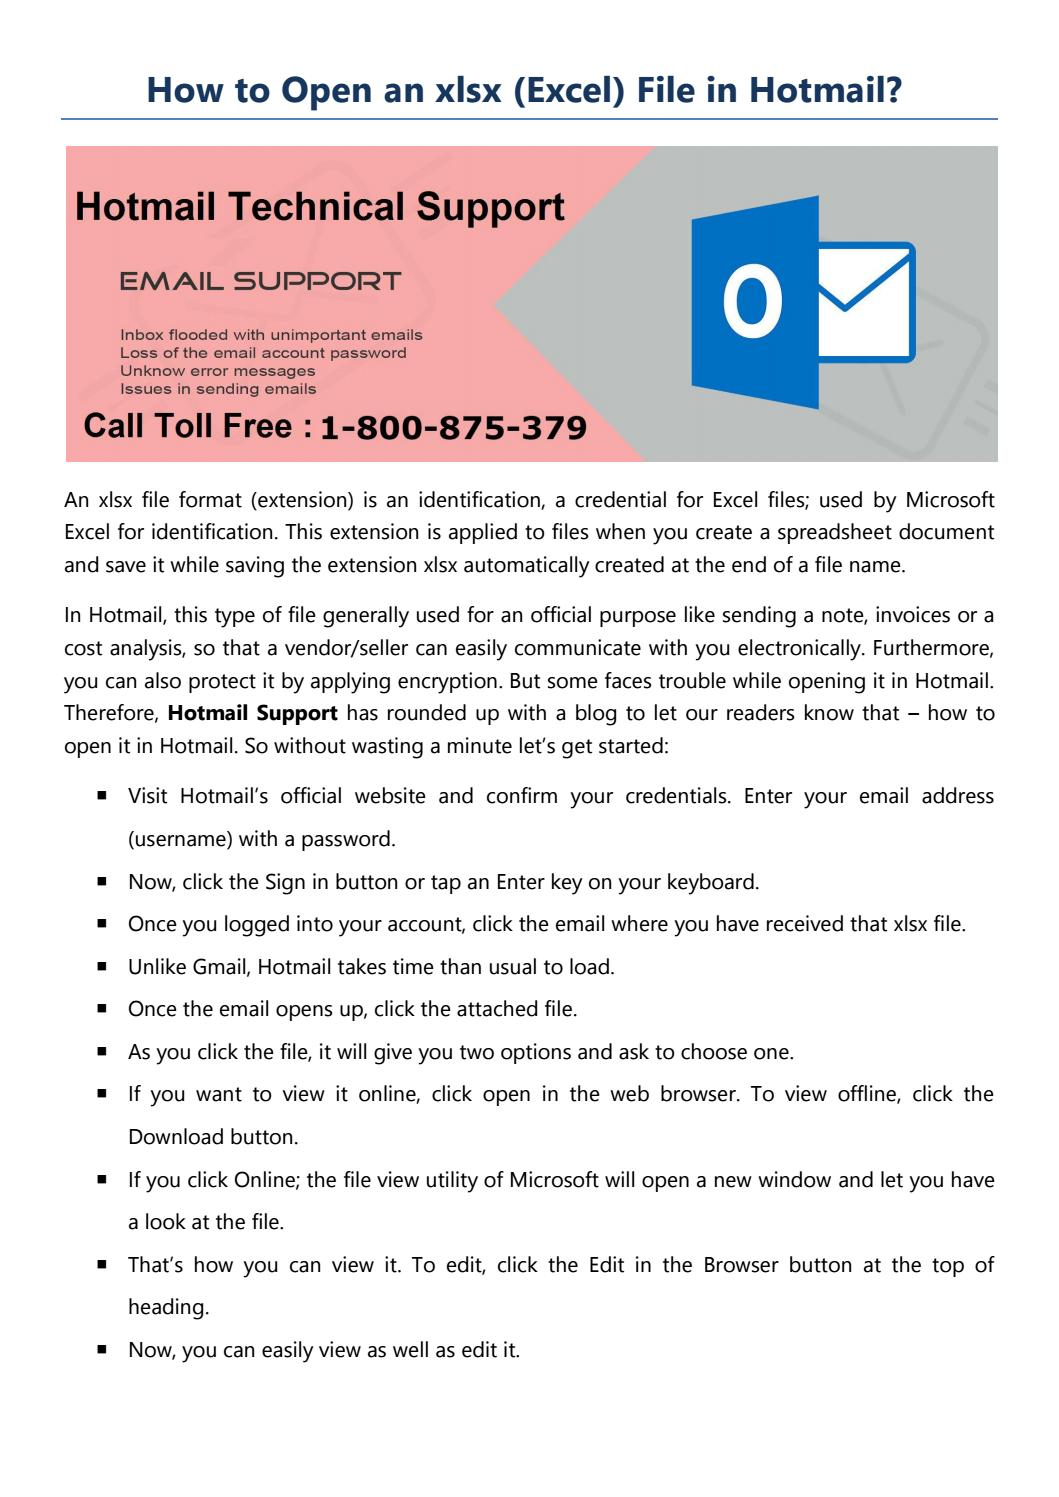 How to open an xlsx file in hotmail by hotmail tech support - issuu